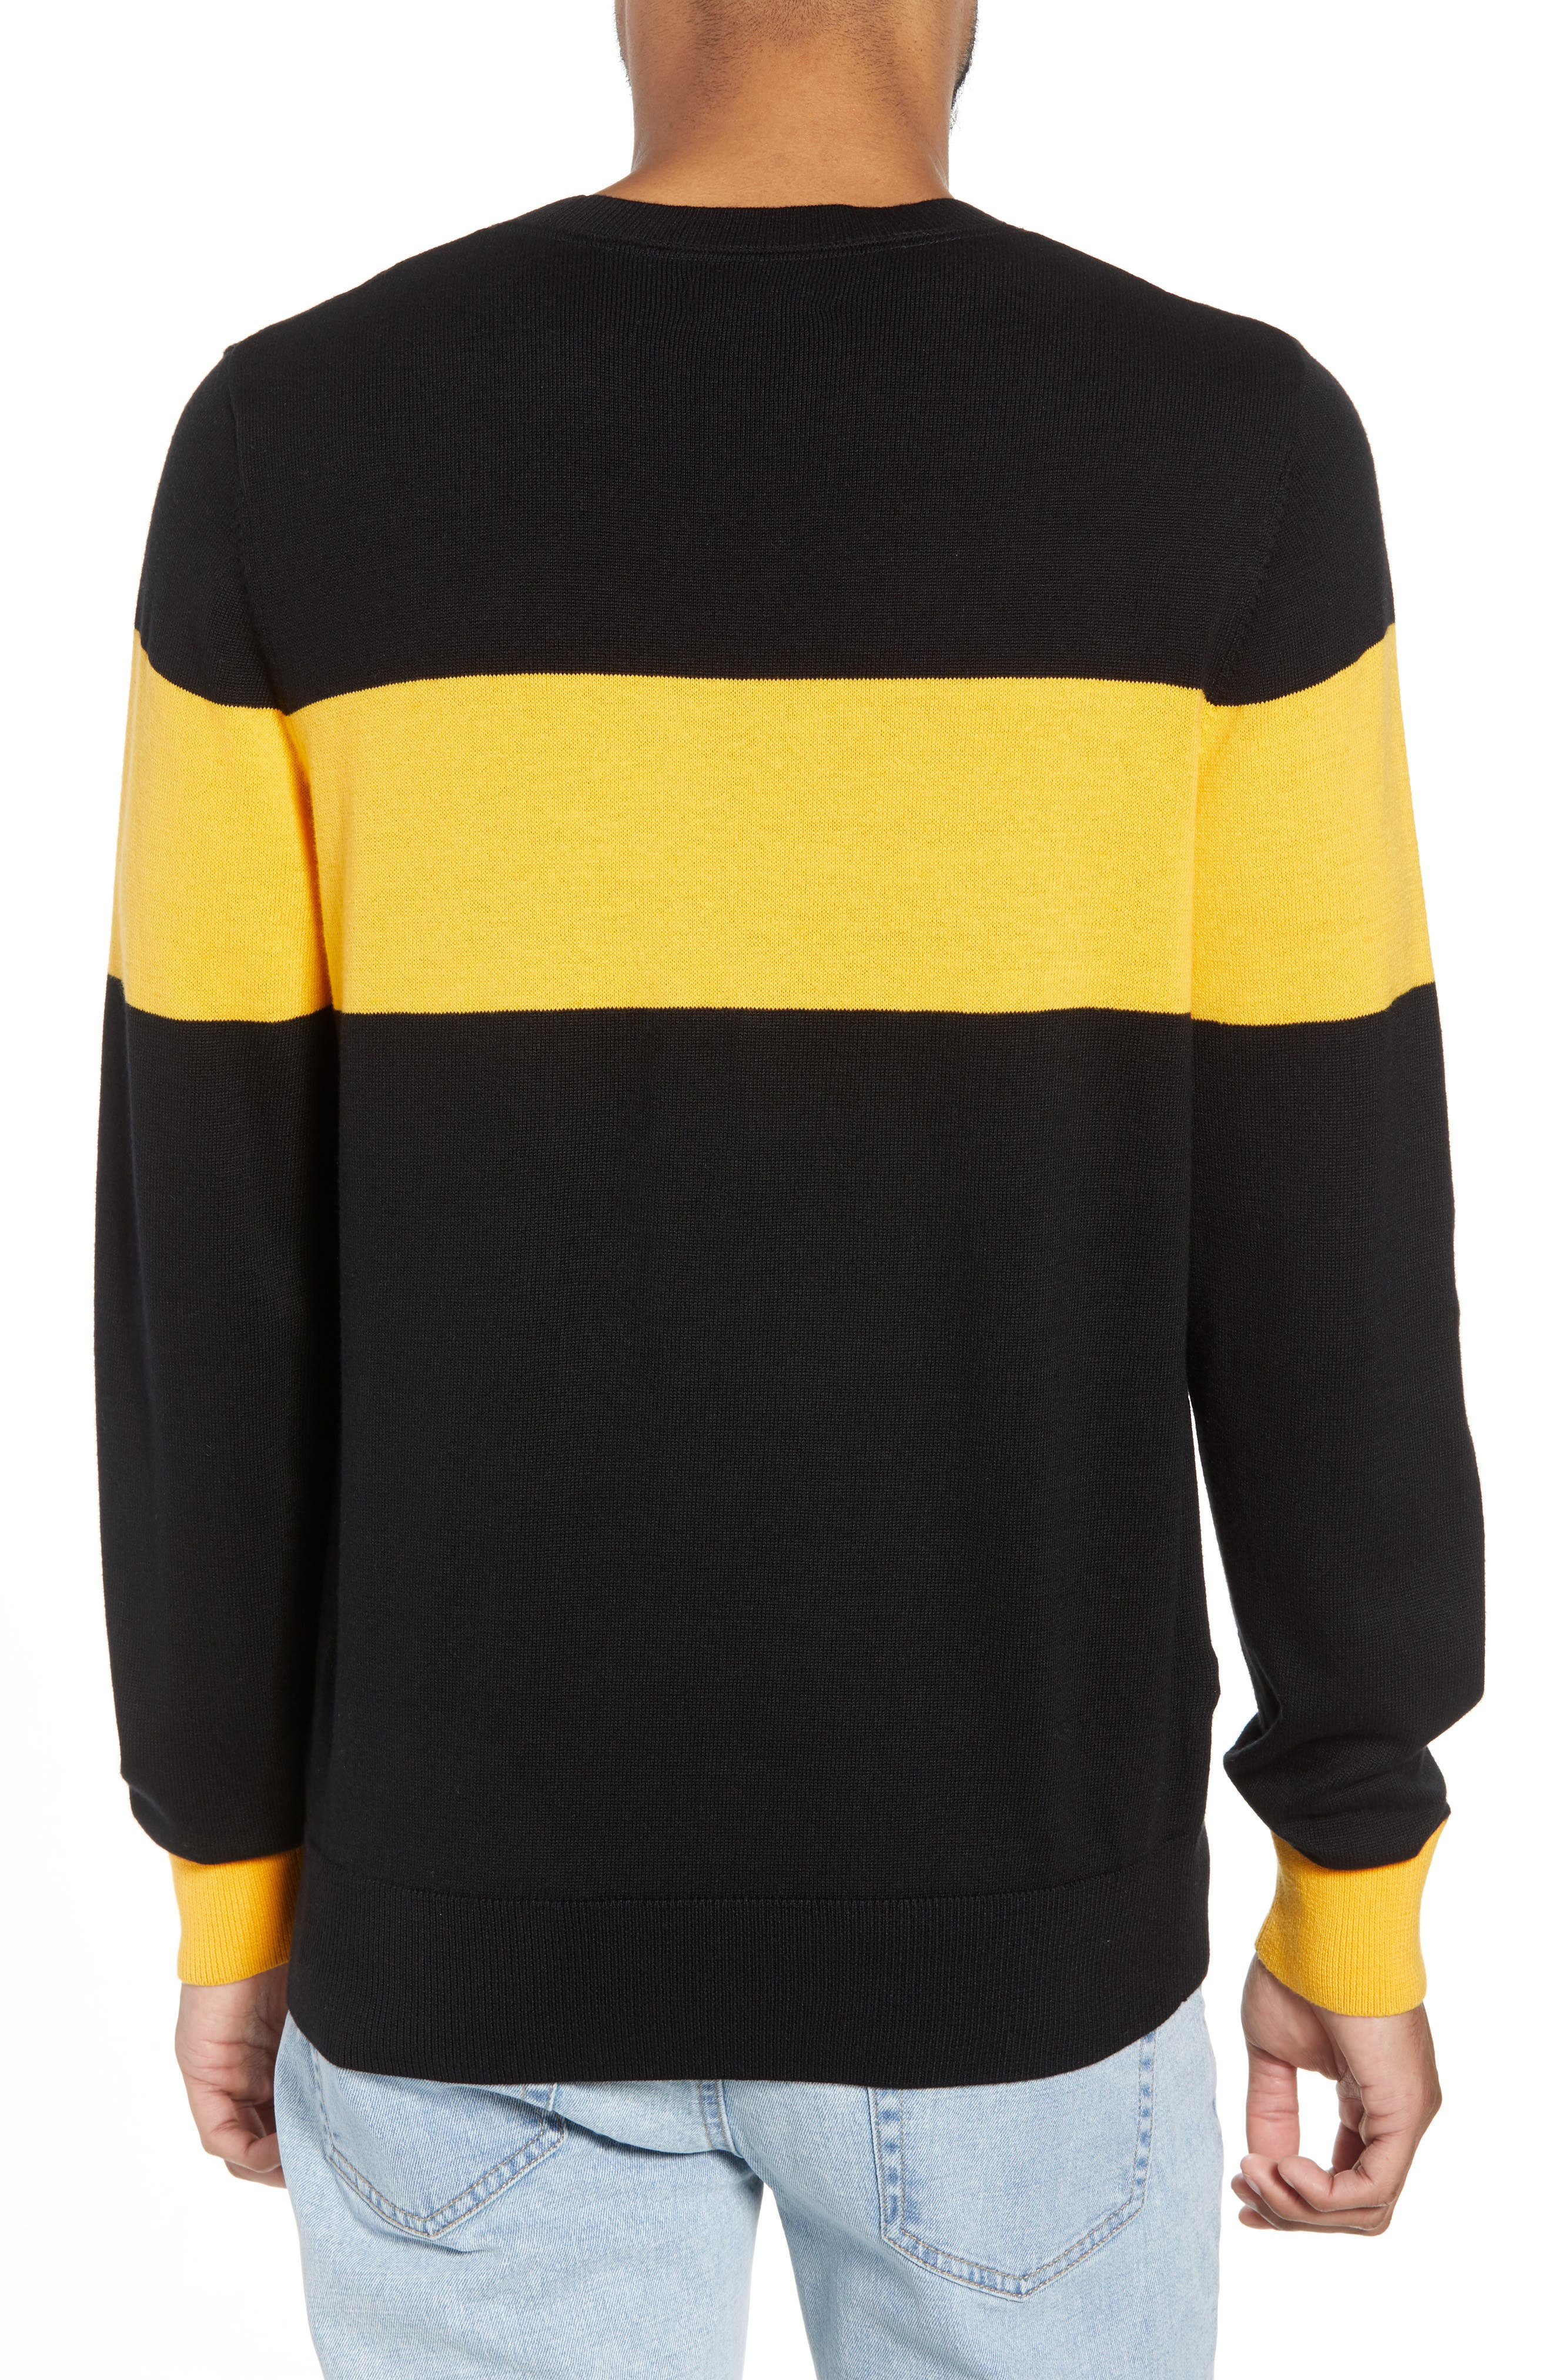 Rugby Stripe Sweater,                             Alternate thumbnail 2, color,                             BLACK YELLOW RUGBY STRIPE